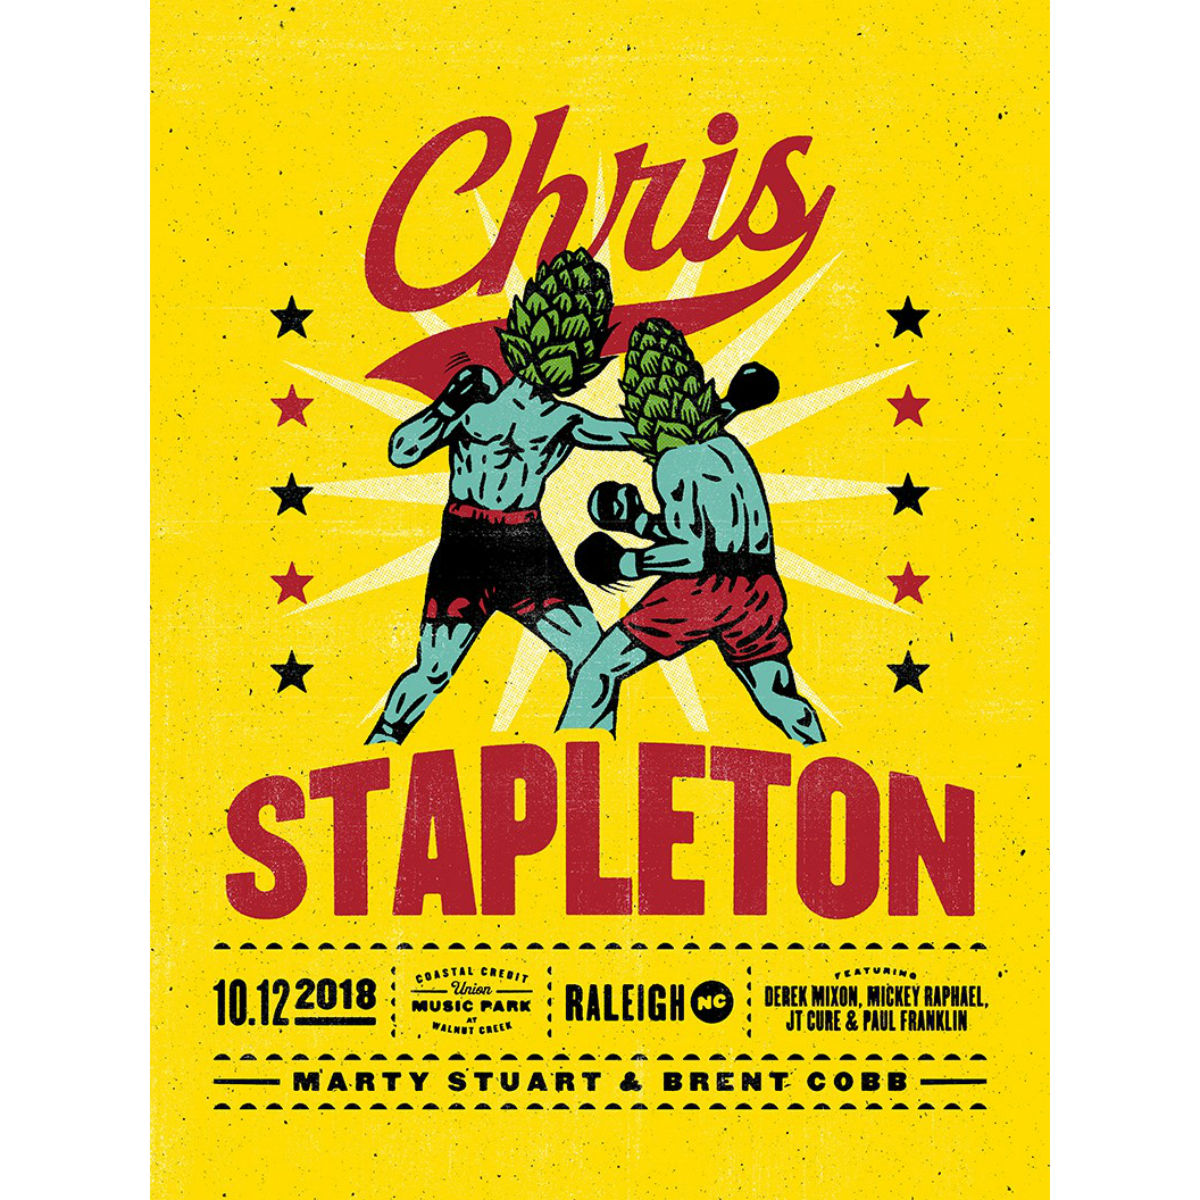 Chris Stapleton Show Poster – Raleigh, NC 10/12/18